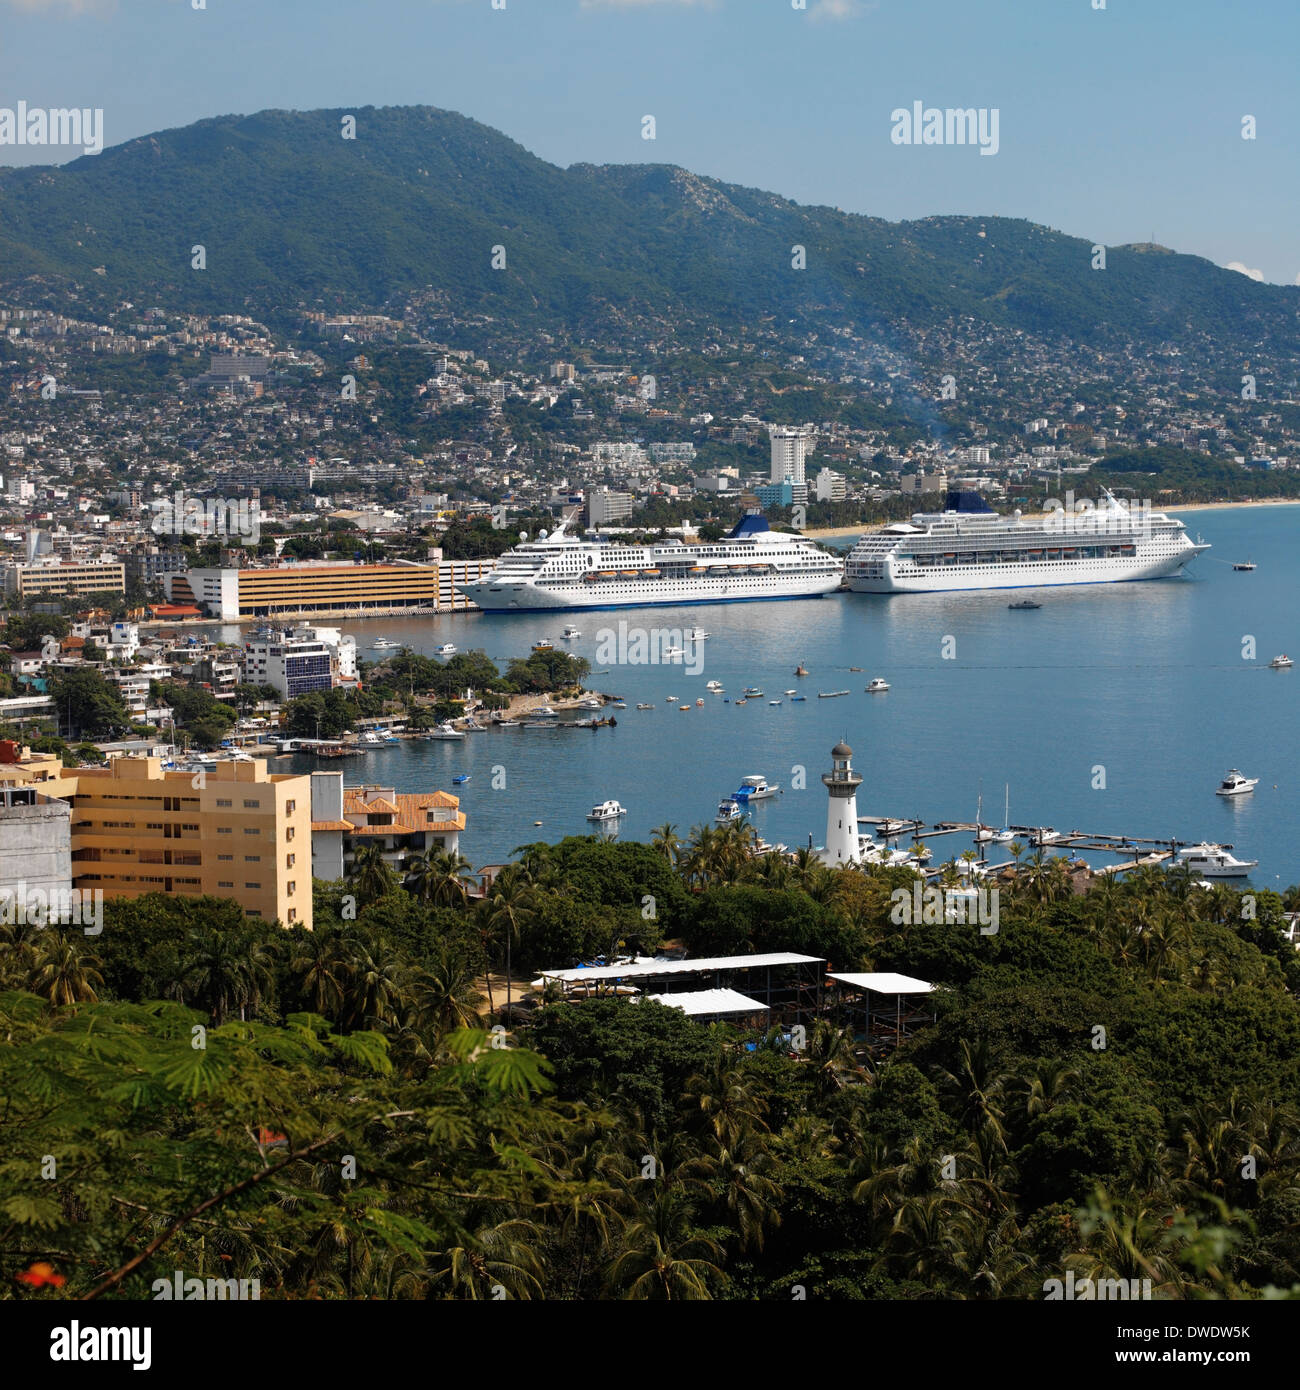 Cruise ships in Acapulco Bay on the Pacific coast of Mexico Stock Photo